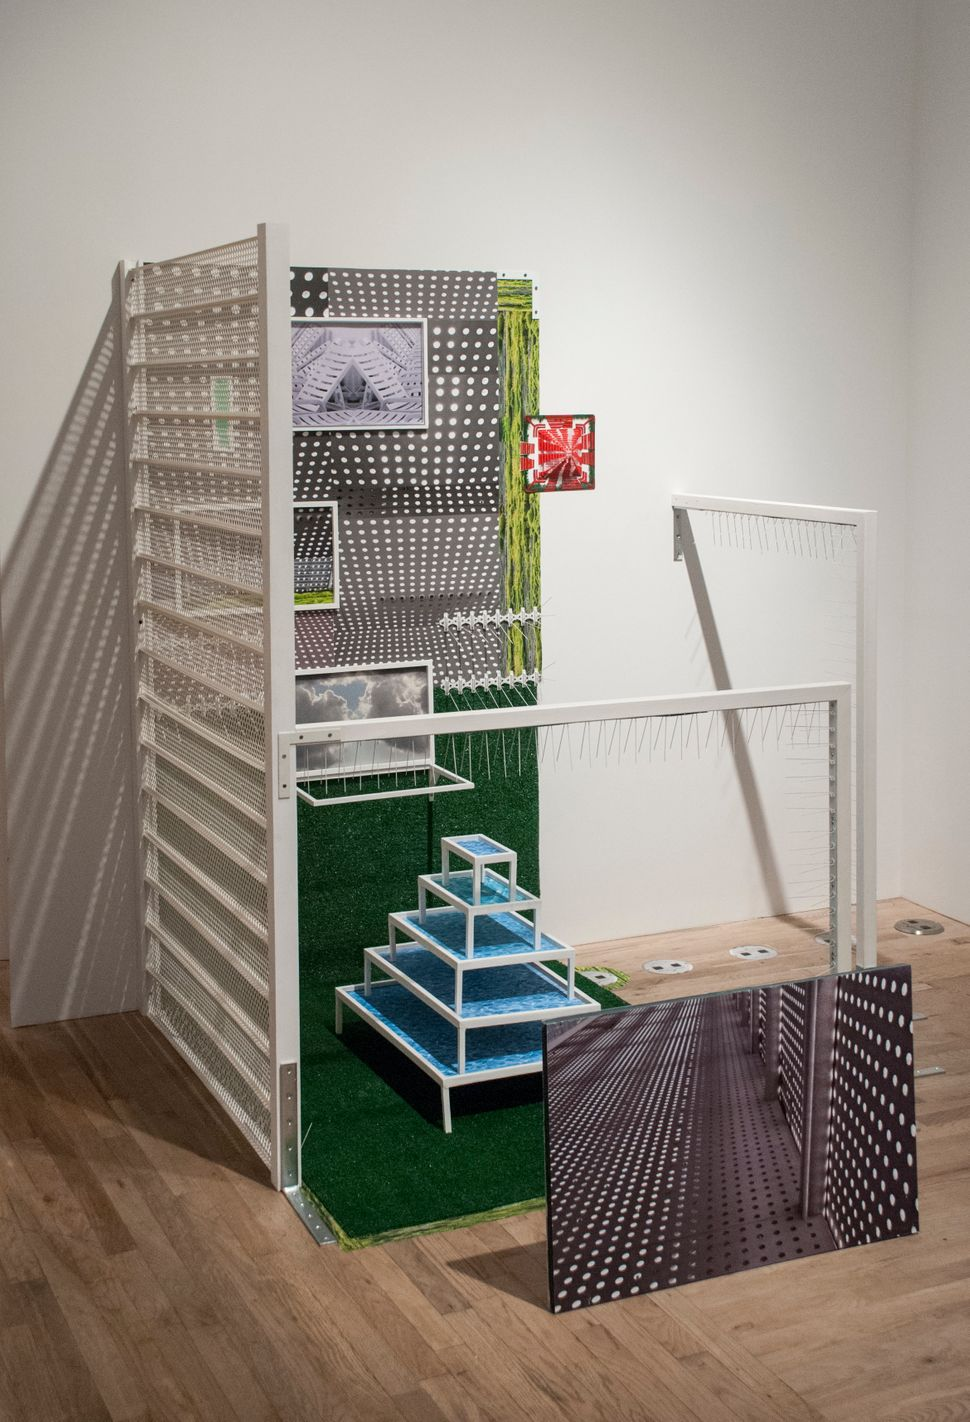 Diana Cooper  Cubicle 2014  mixed media with digital prints  74 x 74 x 70 inches